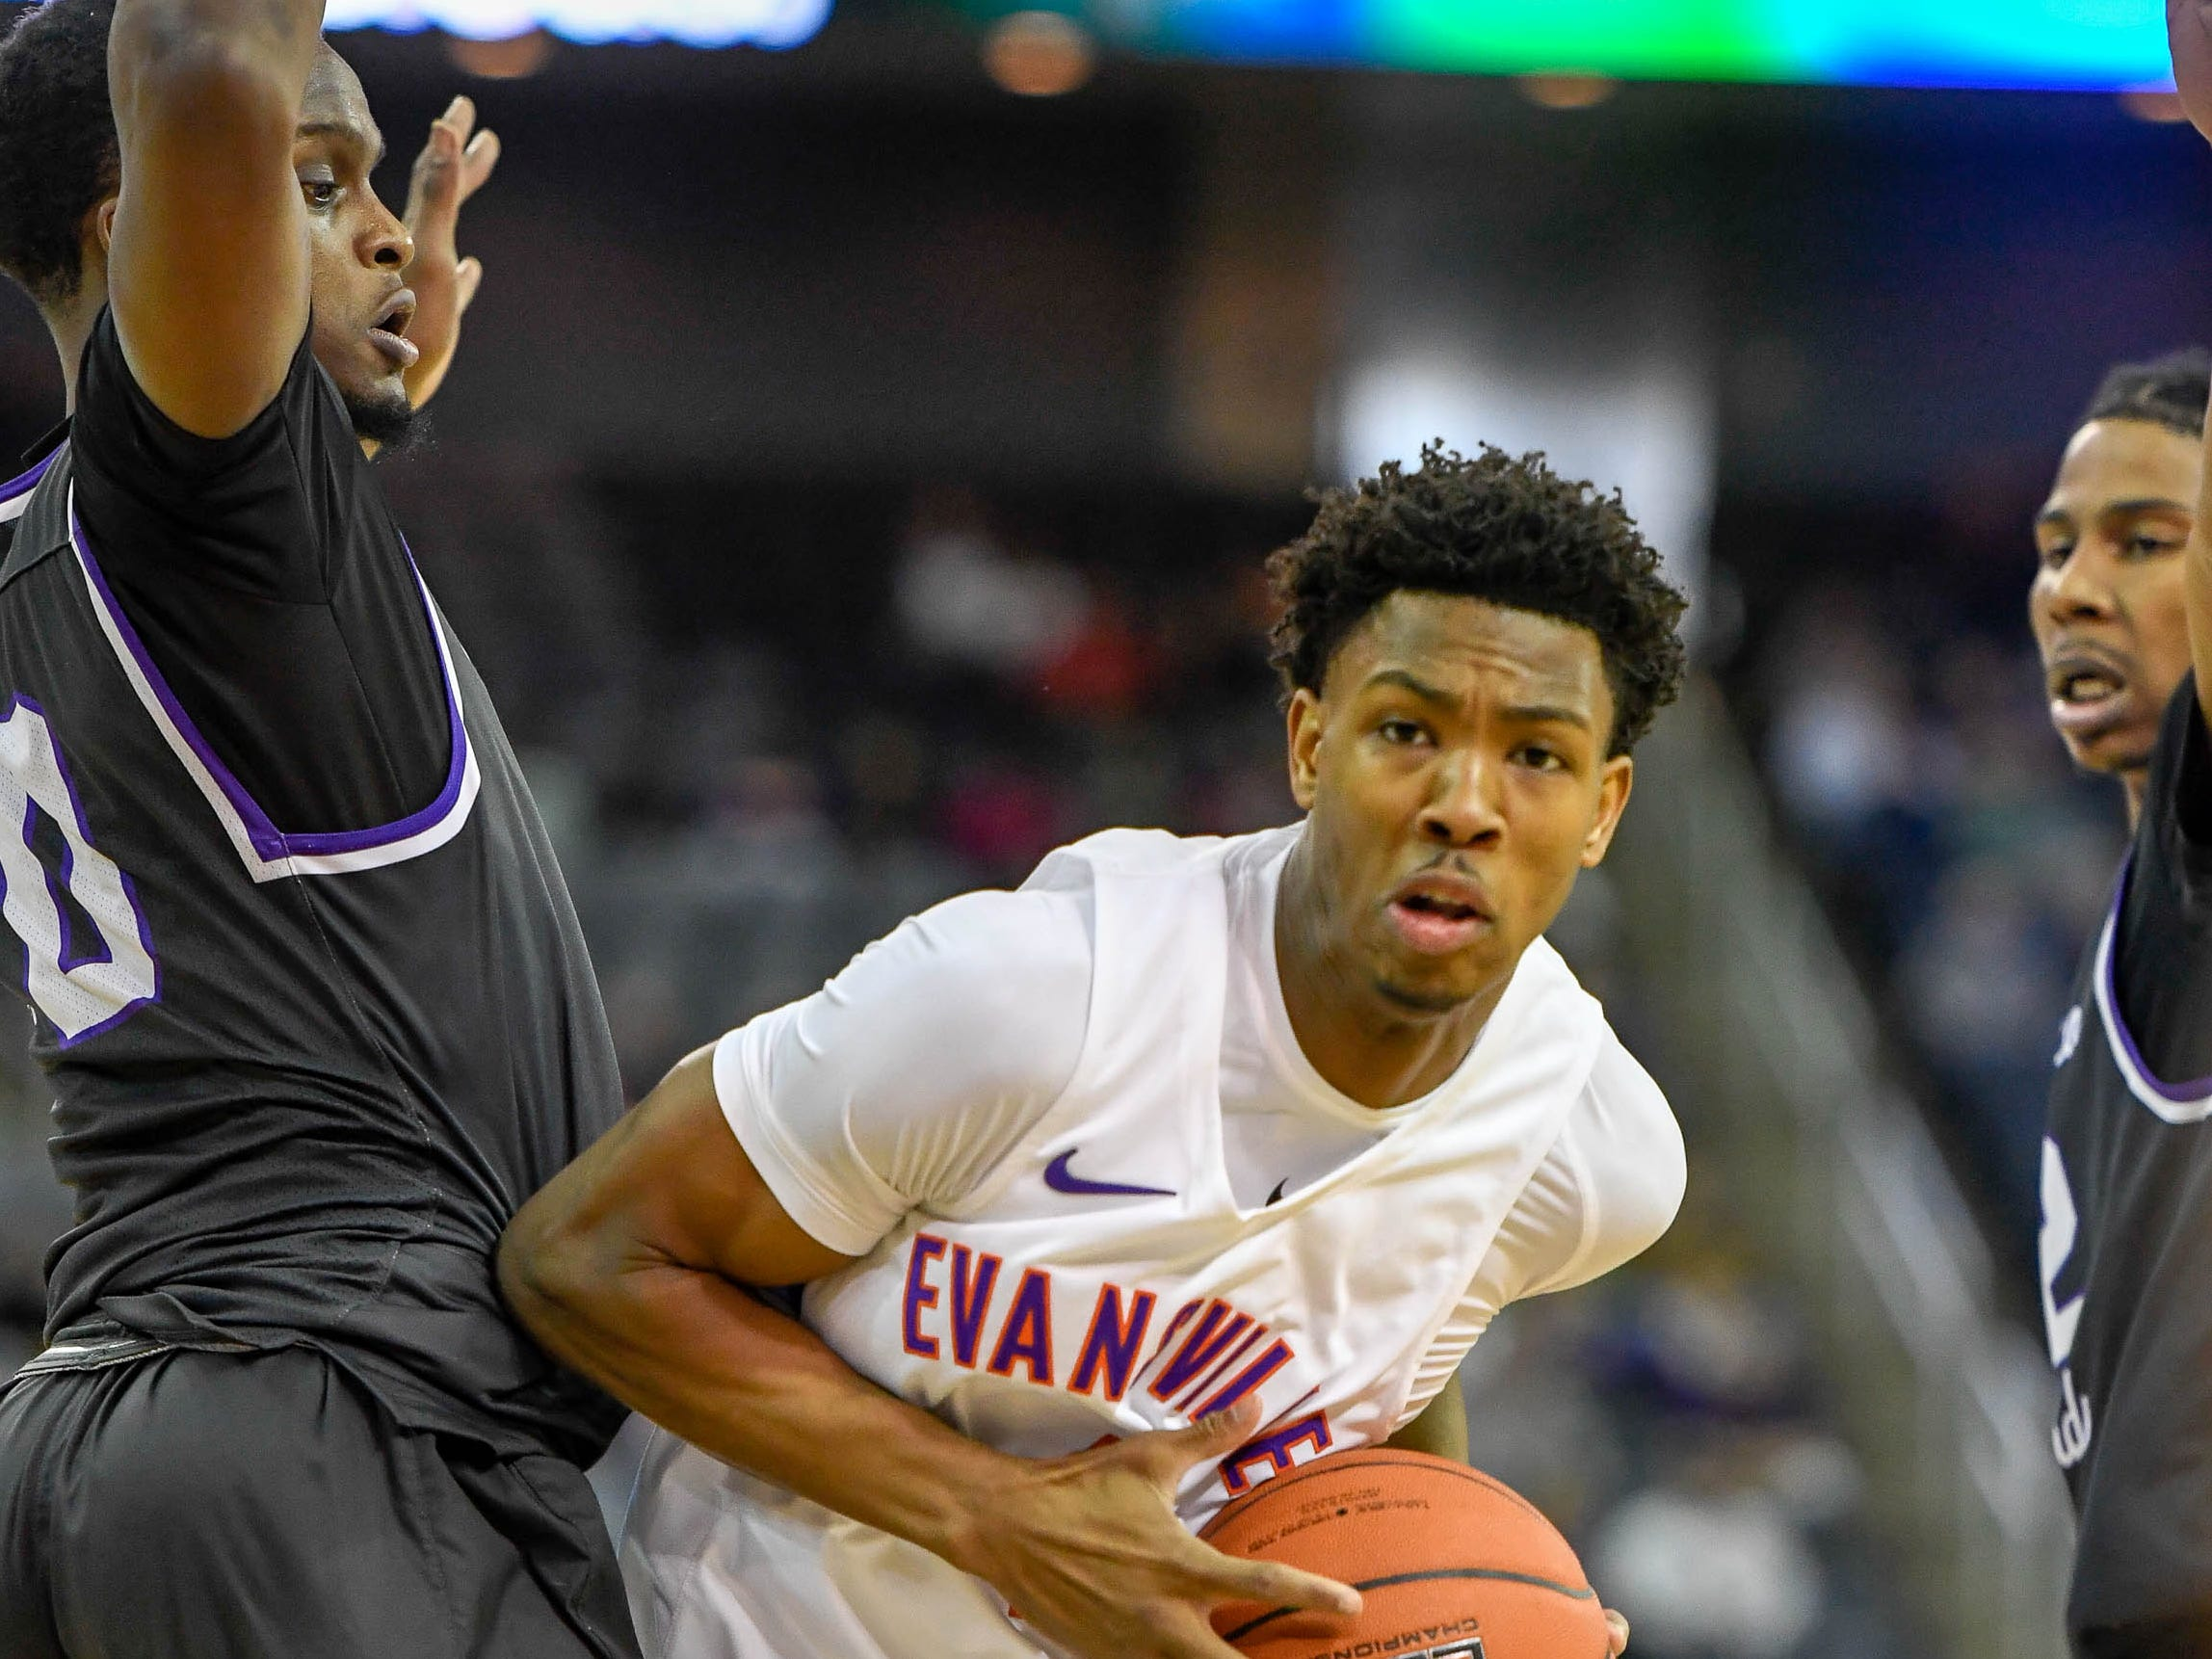 University of Evansville's Marty Hill (1) drives around New Mexico Highlands' Raquan Mitchell (0) as the University of Evansville Purple Aces play the New Mexico Highlands Cowboys in a exhibition game at the Ford Center Saturday, November 3, 2018.